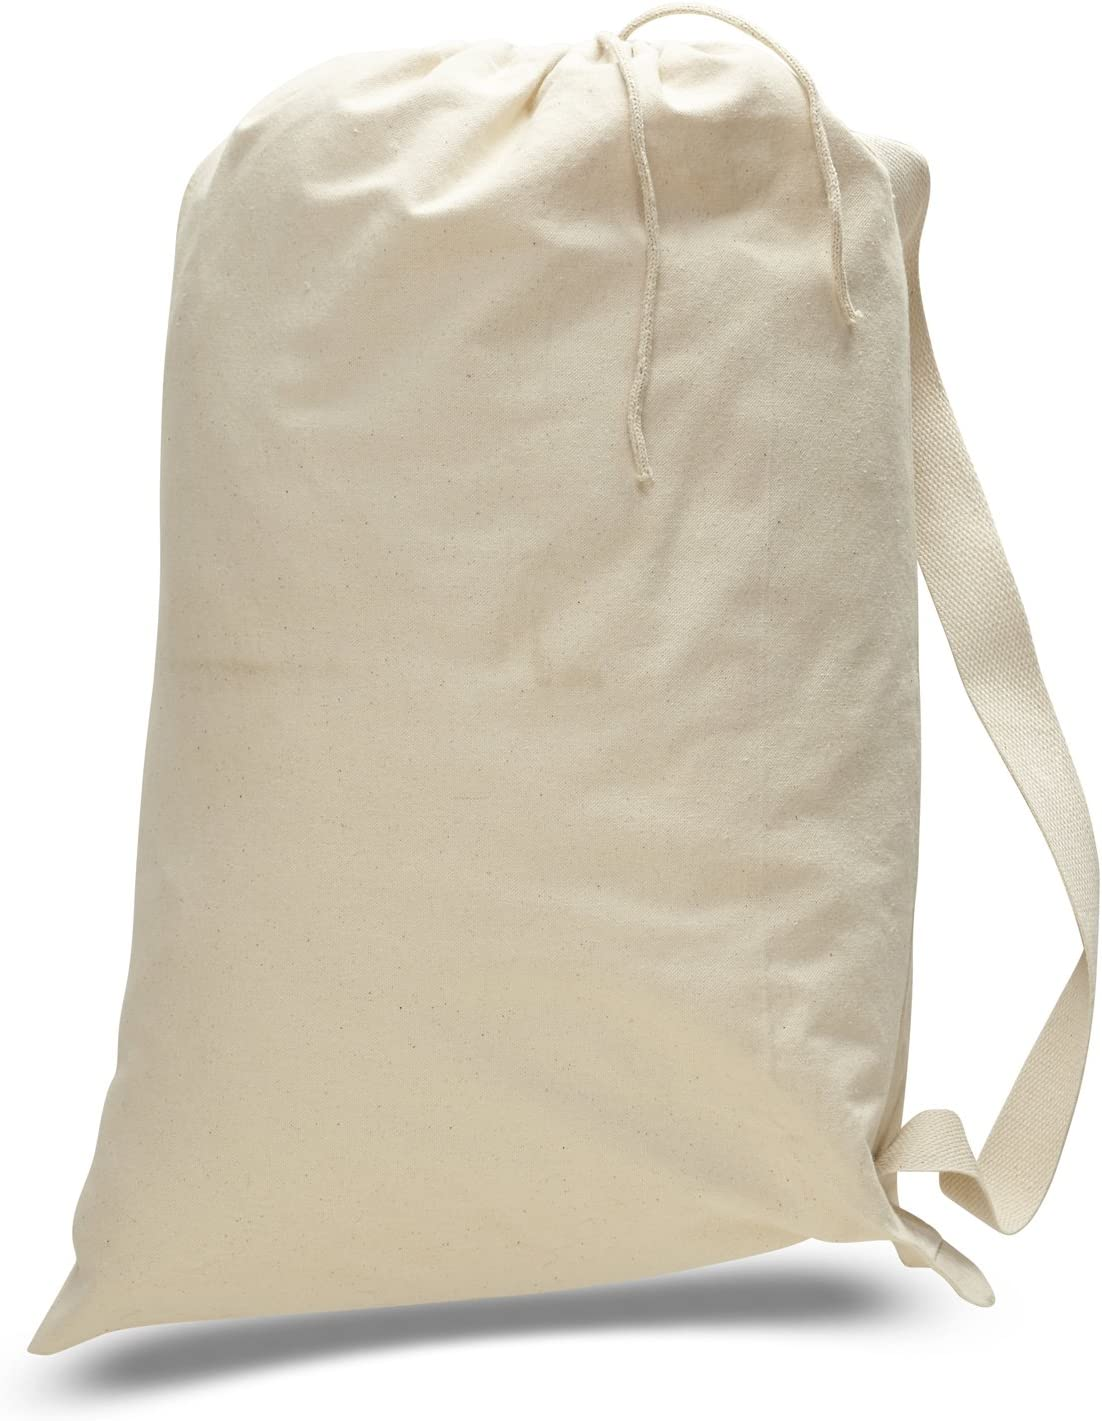 - Heavy Weight 100/% Thick 12oz 1 Dozen Drawstring bags in BULK Medium, Natural Luggage Totes Pack of 12 - Canvas Laundry Travel Garment Bags With Shoulder Strap